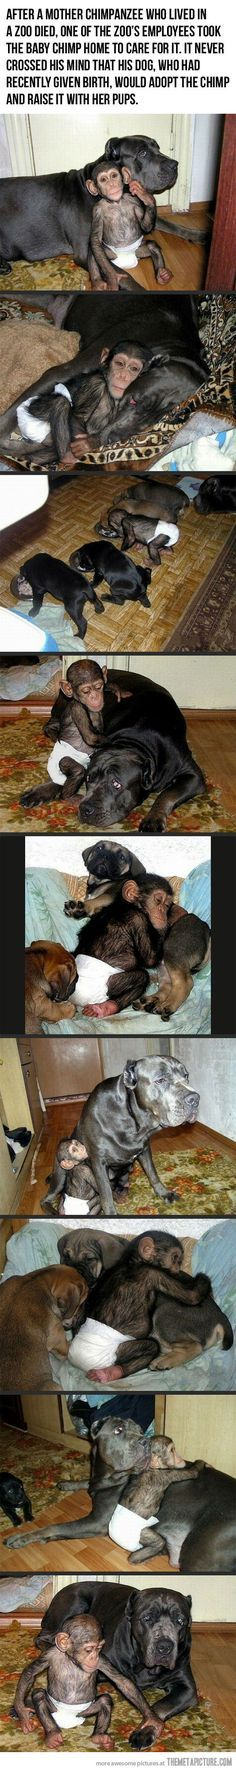 OMG, just proves that the heart of a dog has NO boundaries  .... Love this :))